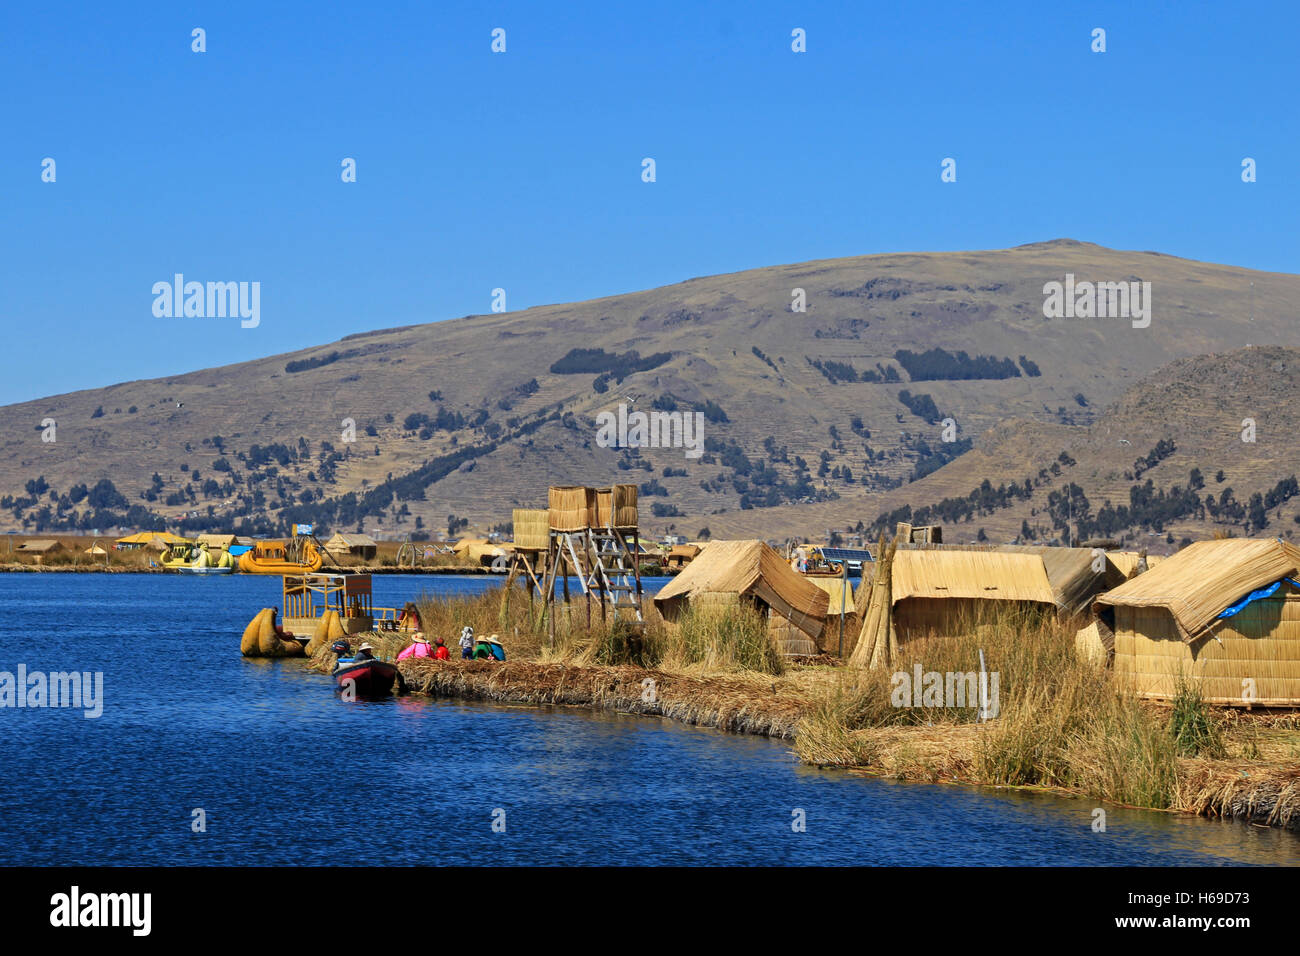 Totora reed floating islands Uros, lake Titicaca, Peru Stock Photo